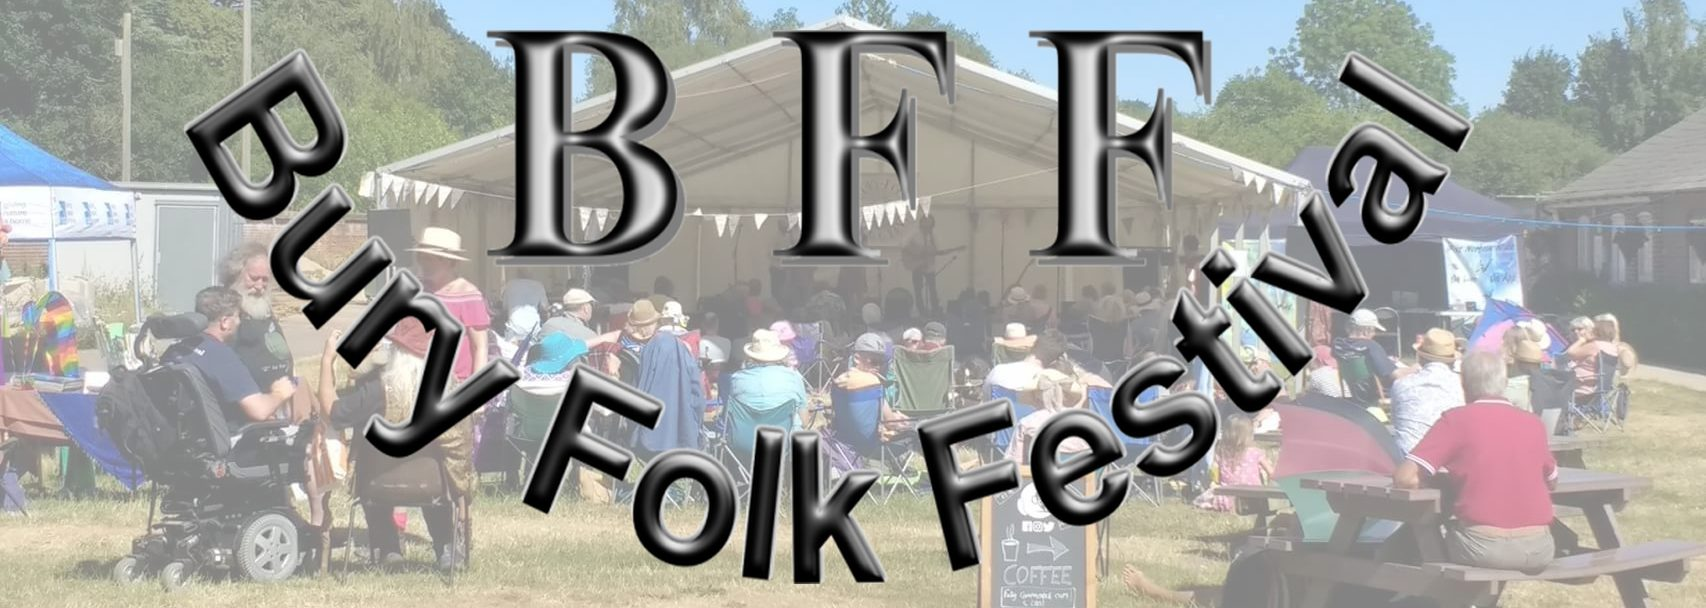 7th Bury Folk Festival 2021